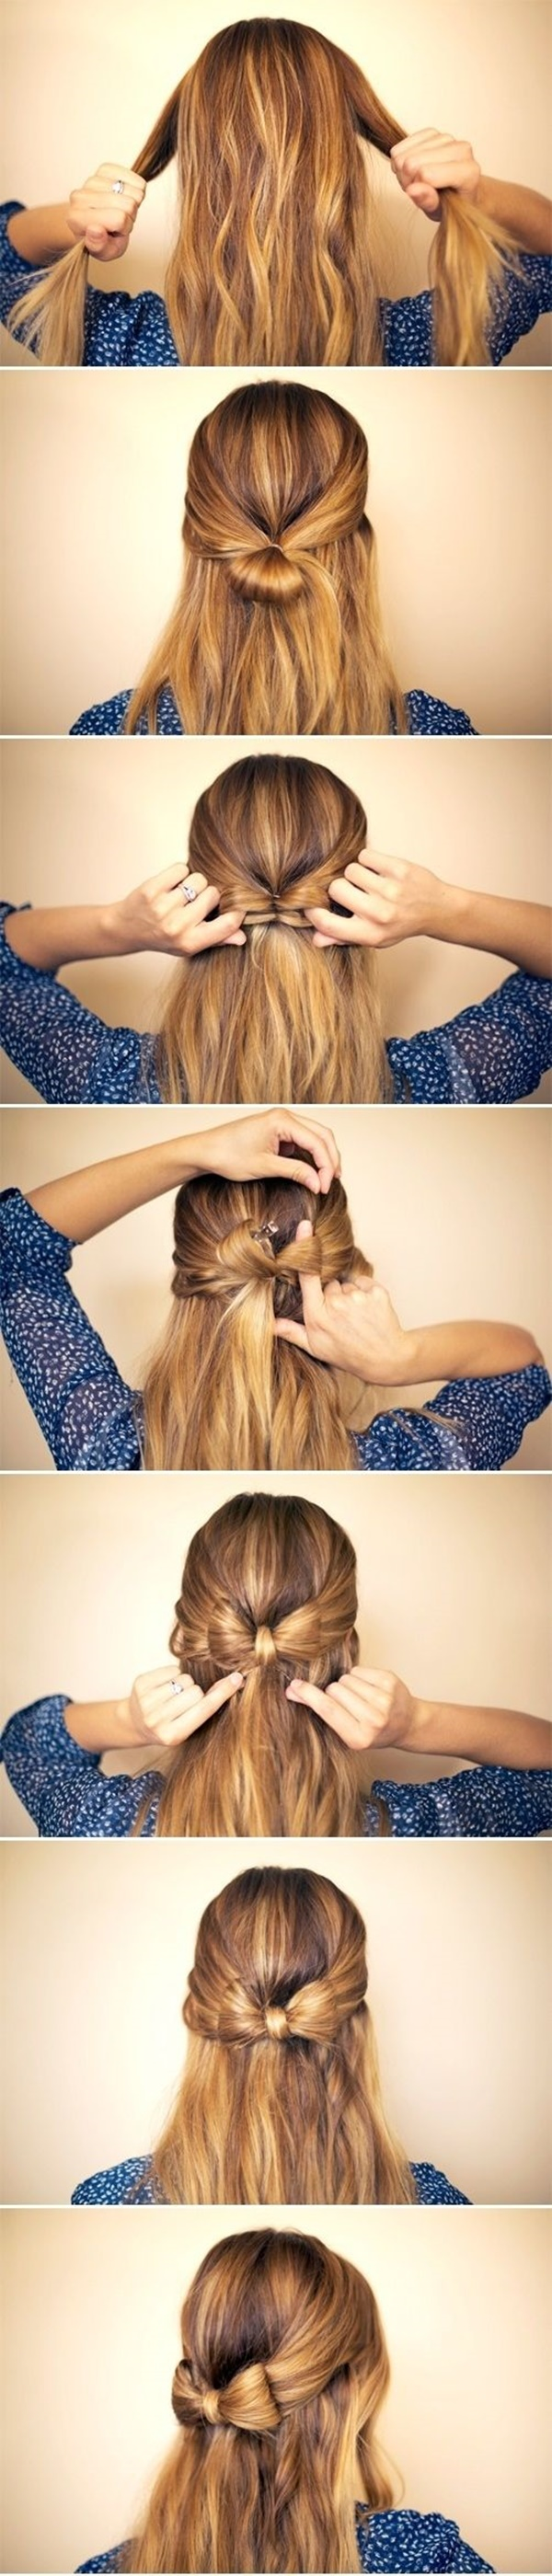 Easy Step By Step Hairstyles for Long Hair9